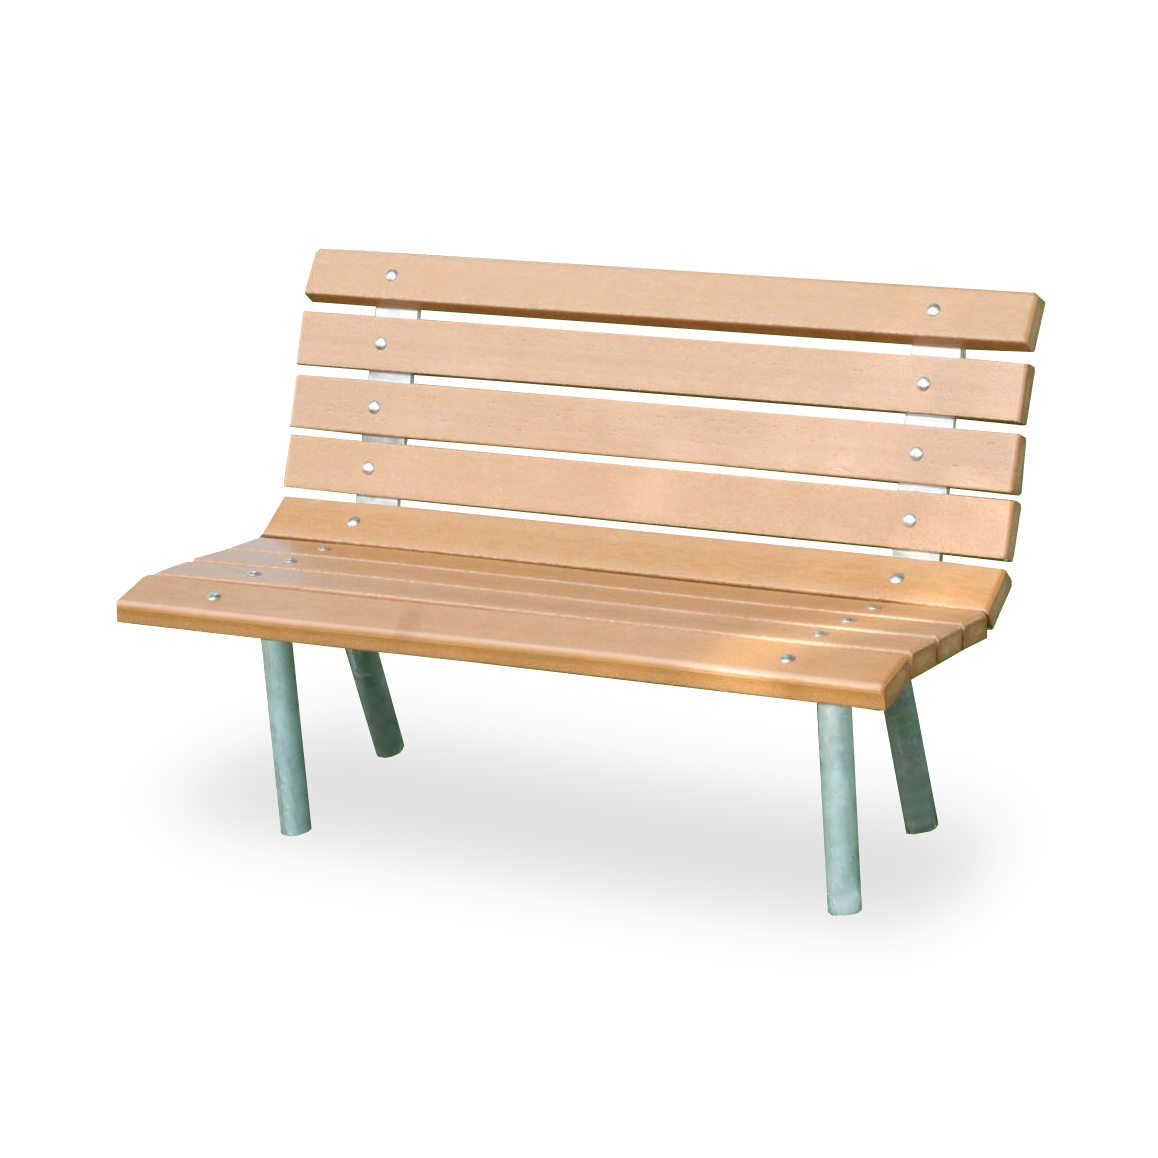 Recycled Plastic St Pete Bench By Jayhawk Plastics